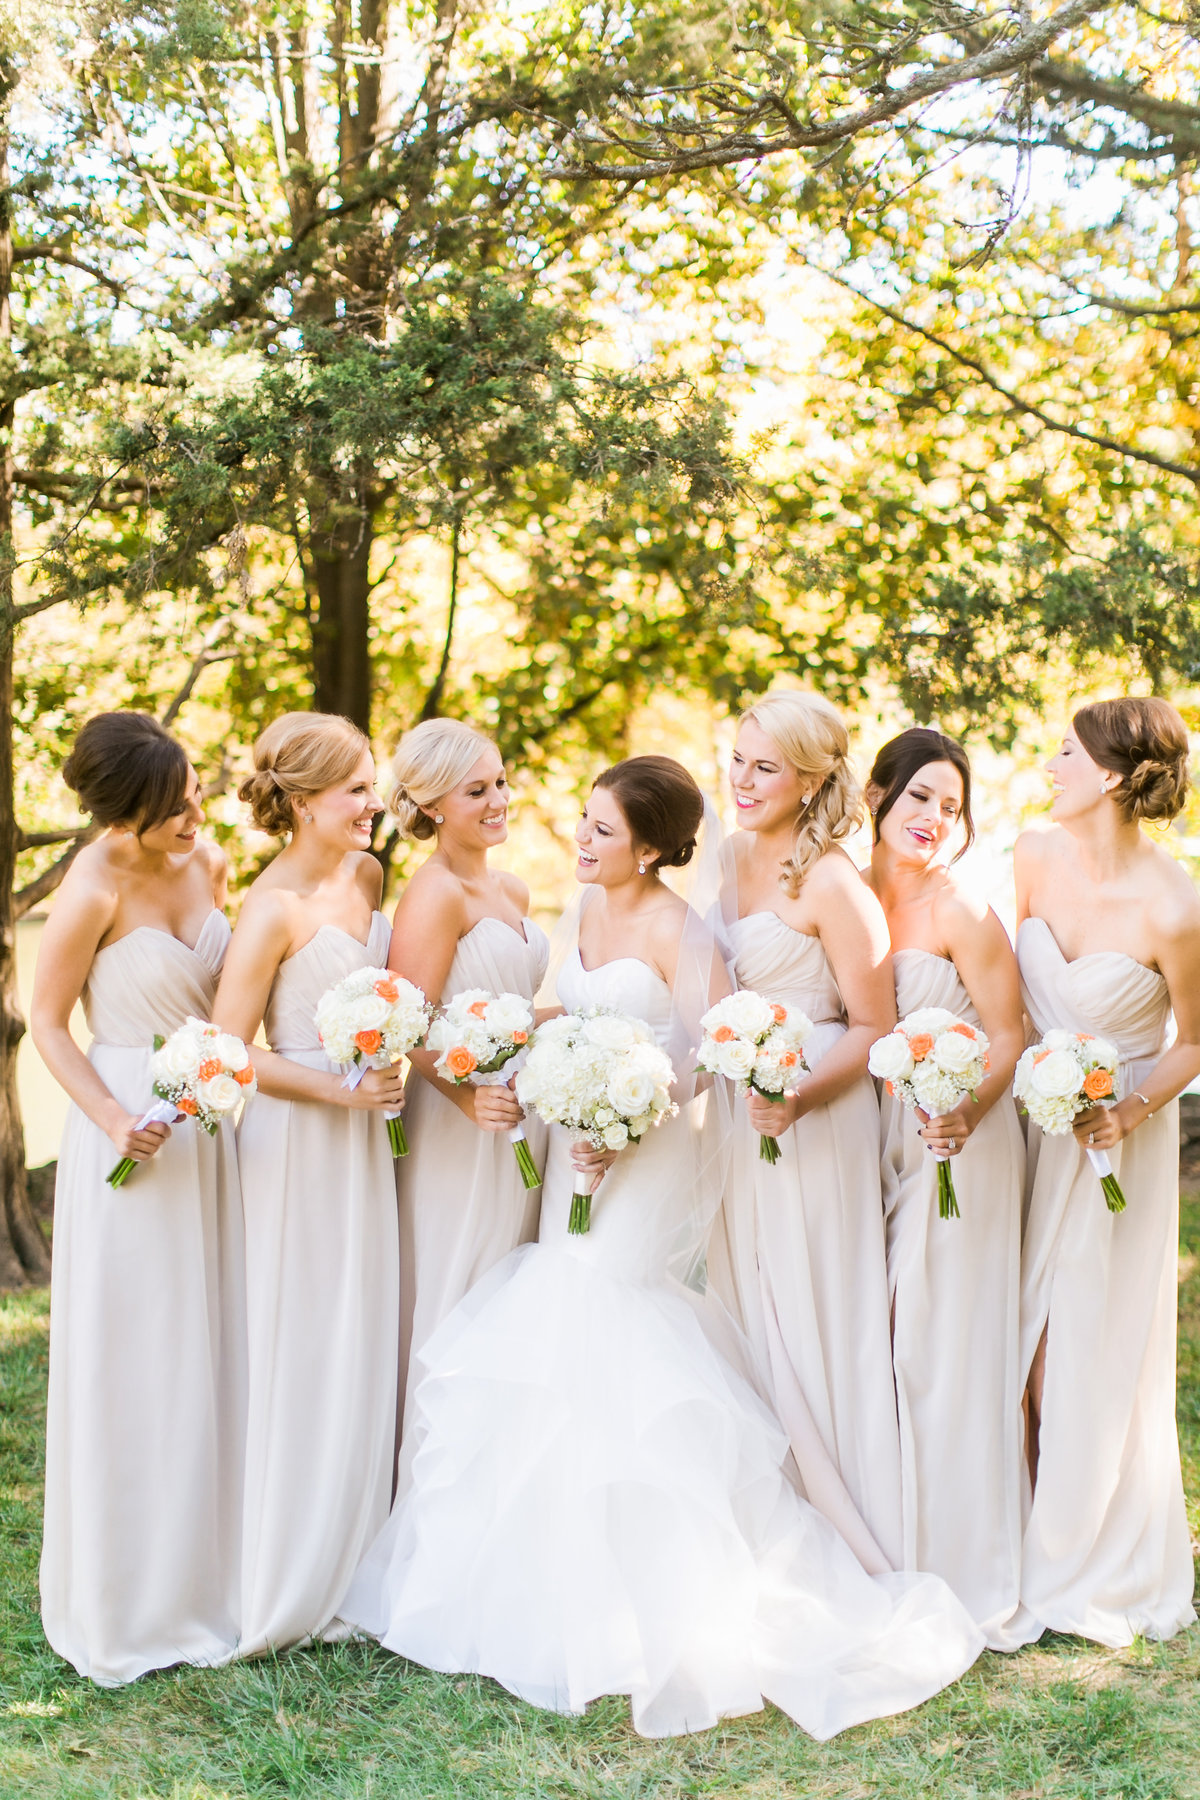 TheUrbanEventWedding_KelliGrant_CatherineRhodesPhotography-295-Edit